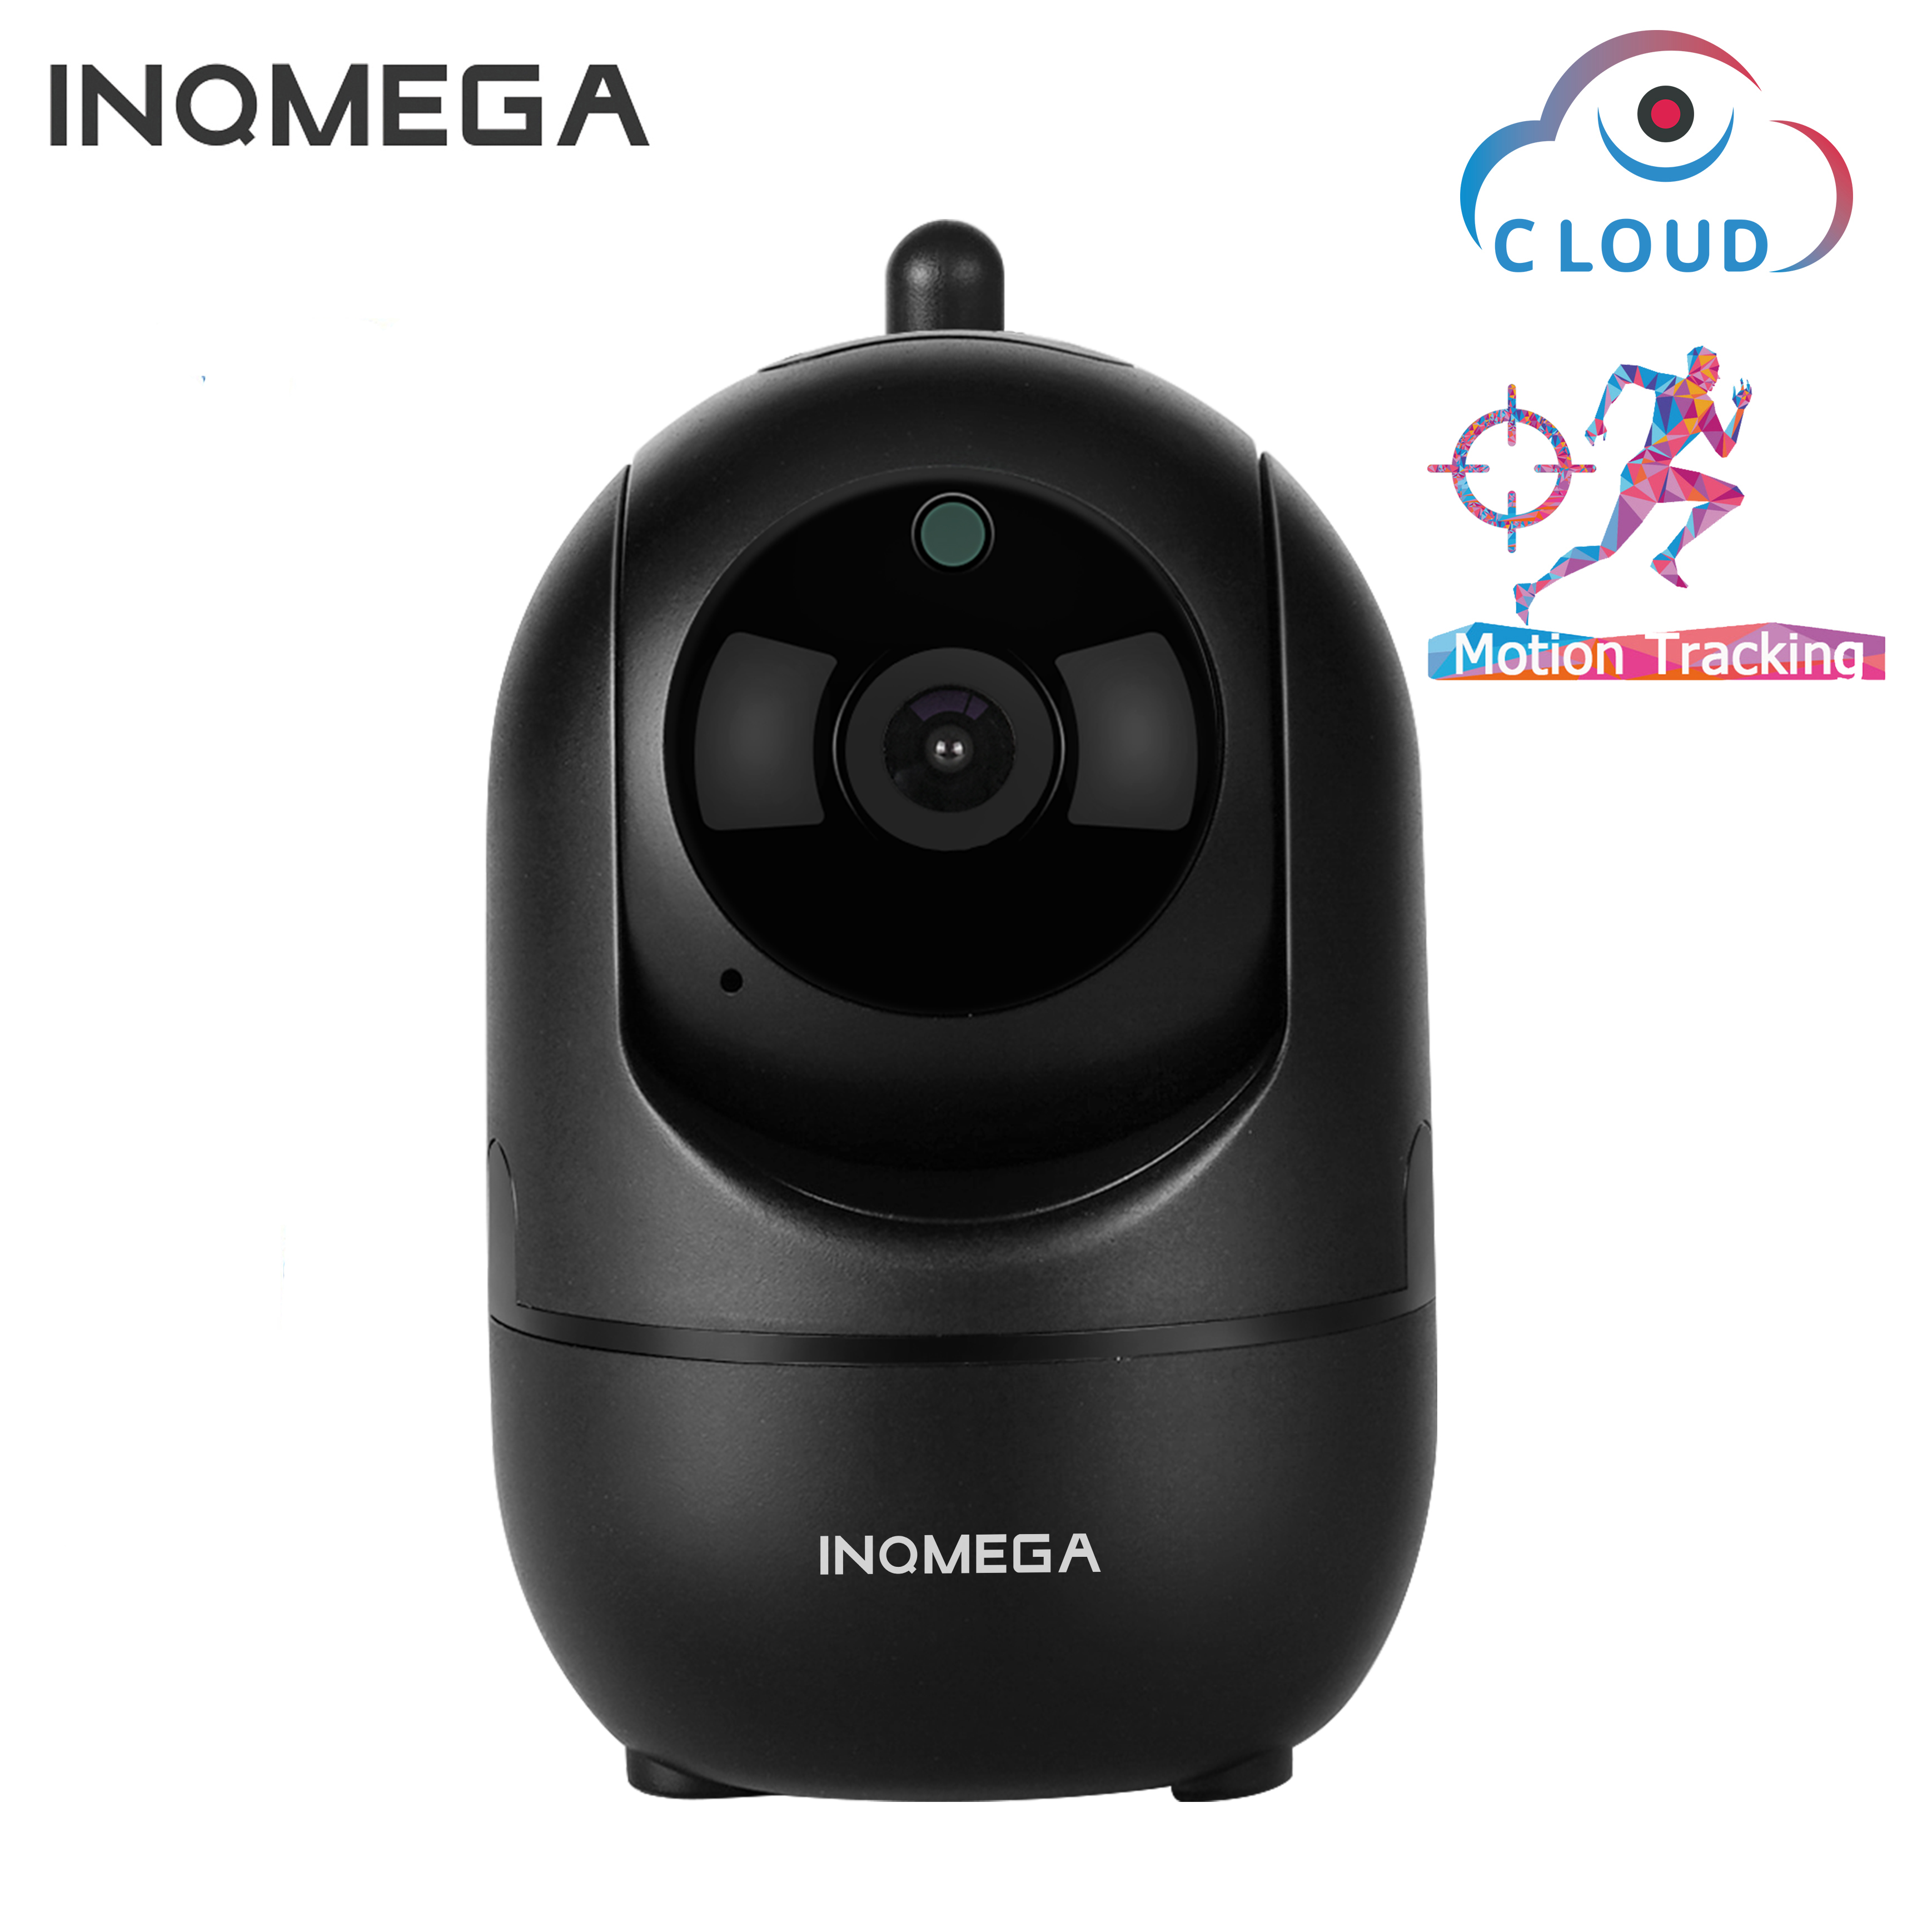 INQMEGA Cloud Wireless IP Camera Intelligent Auto Tracking Of Human Home Security Surveillance CCTV Network Wifi Kamera